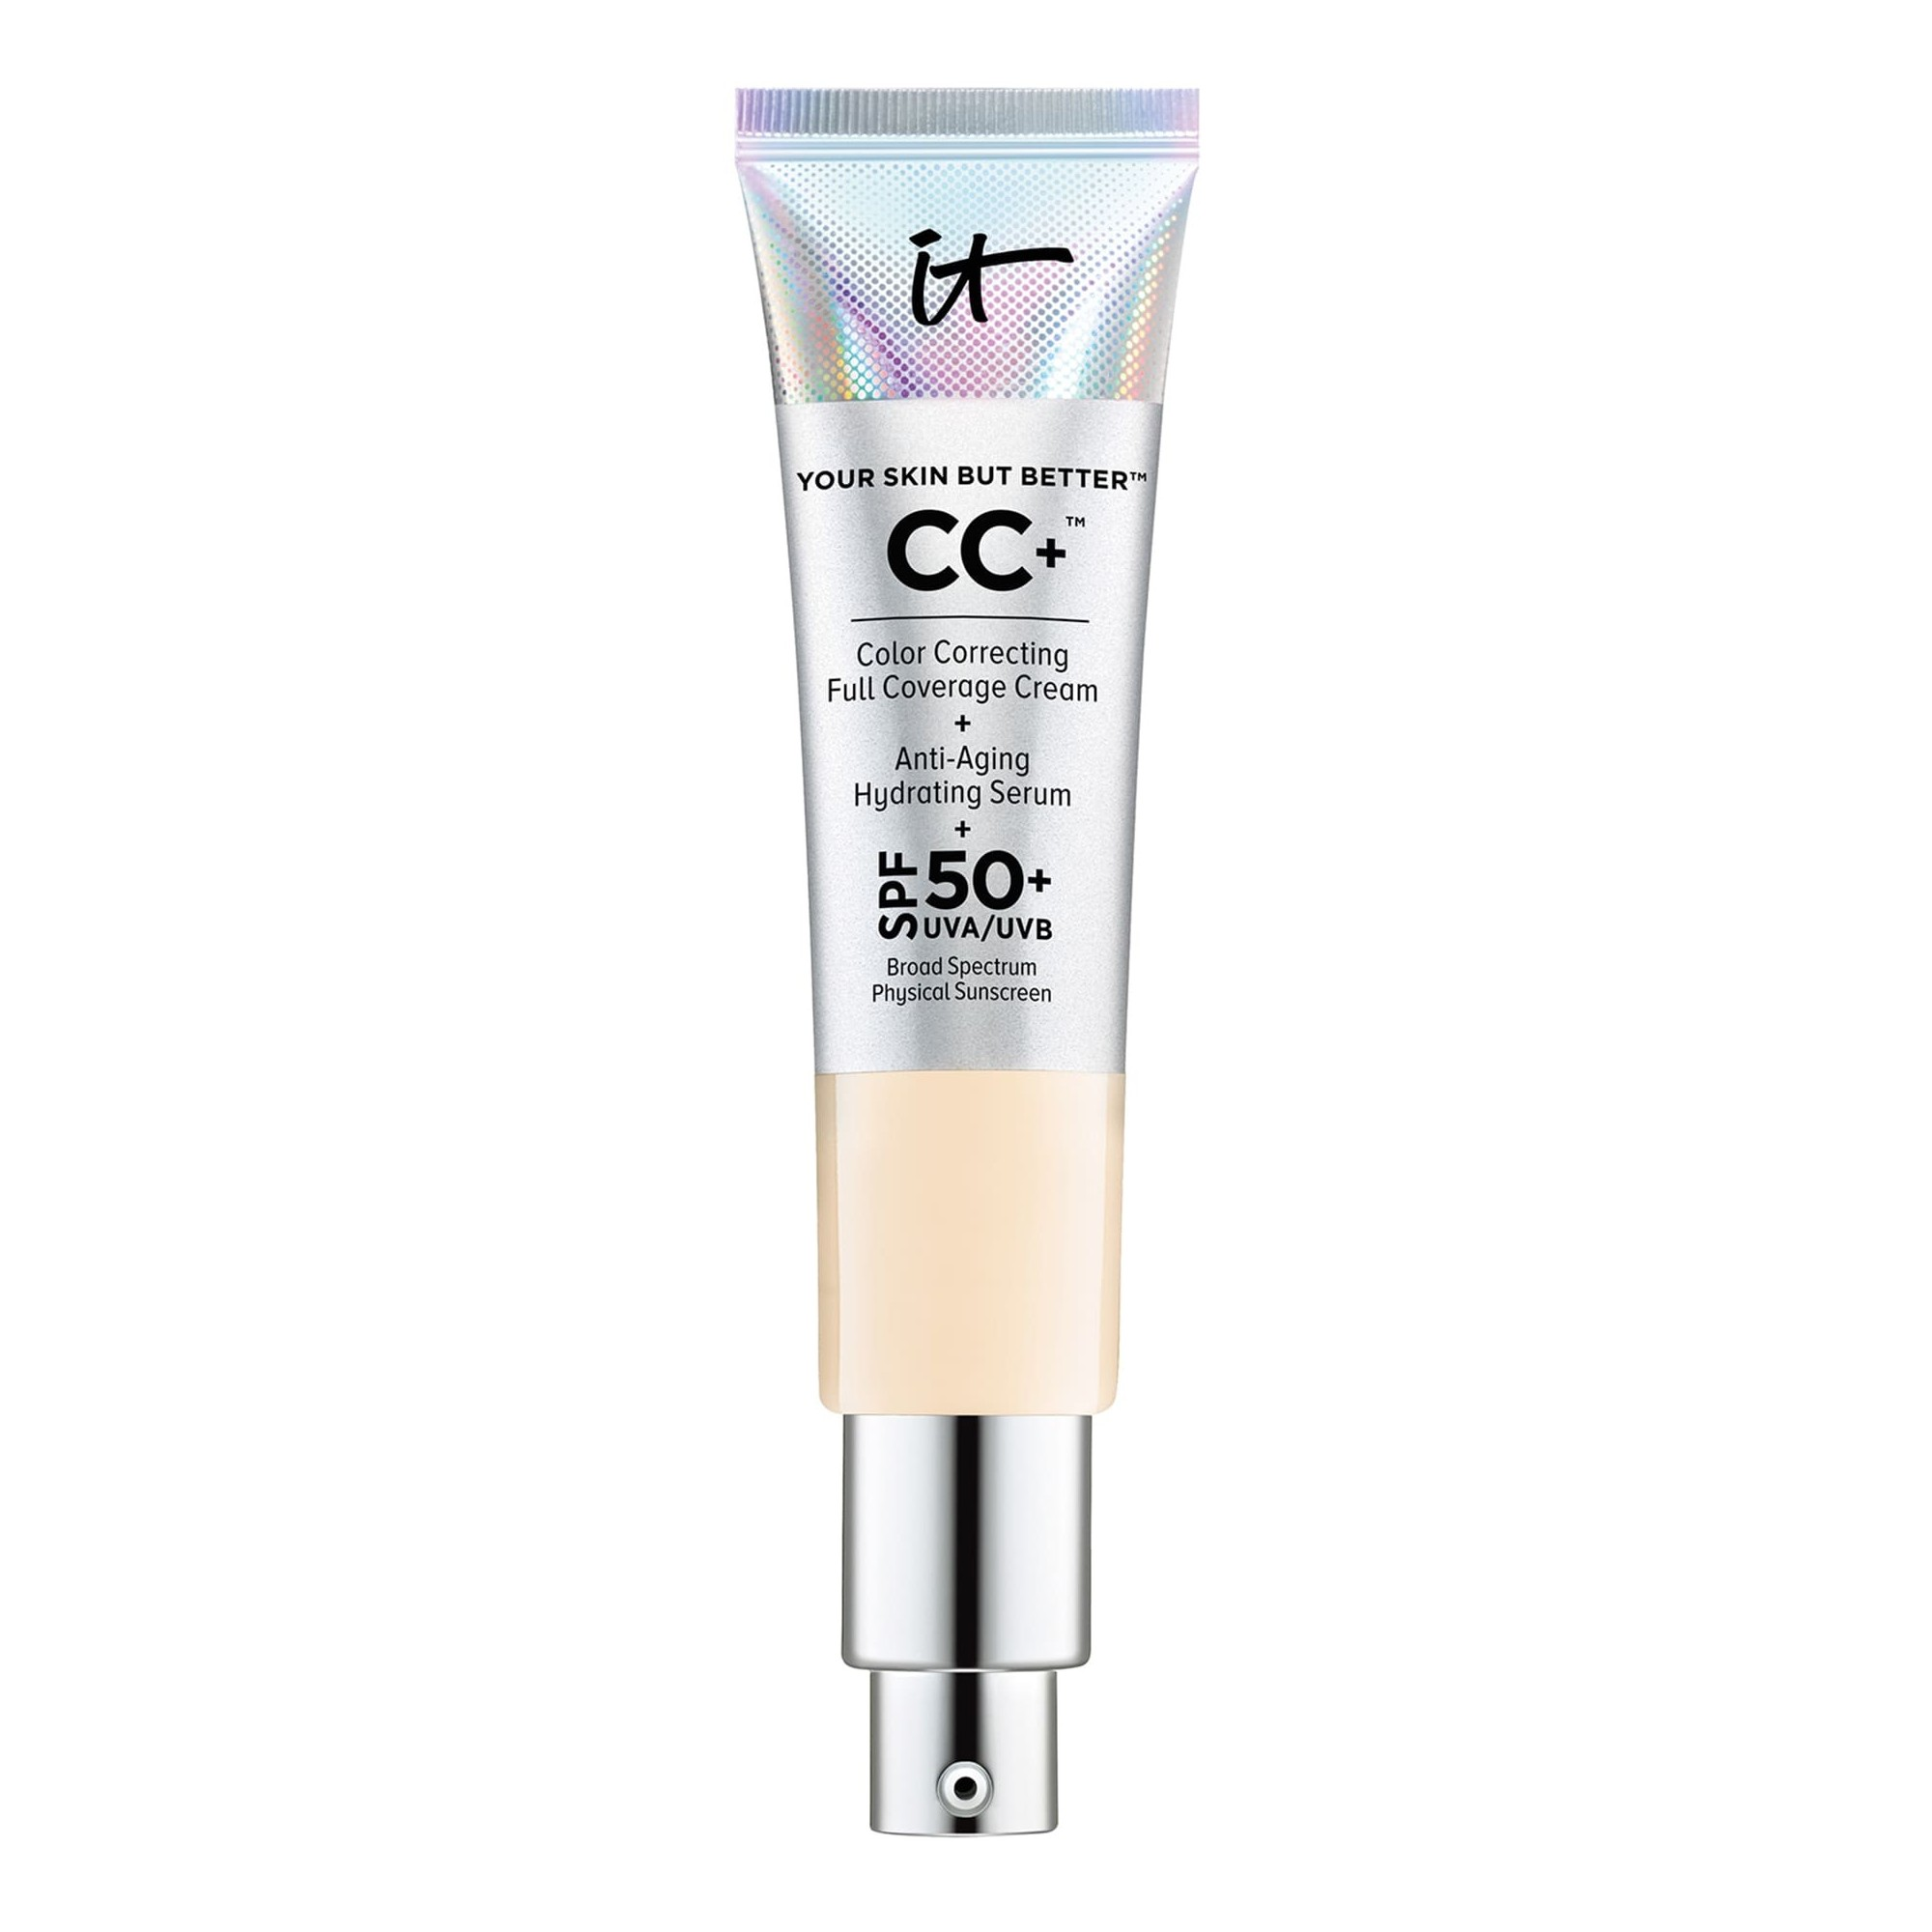 IT Cosmetics Your Skin But Better CC+ Cream with SPF 50+ Fair